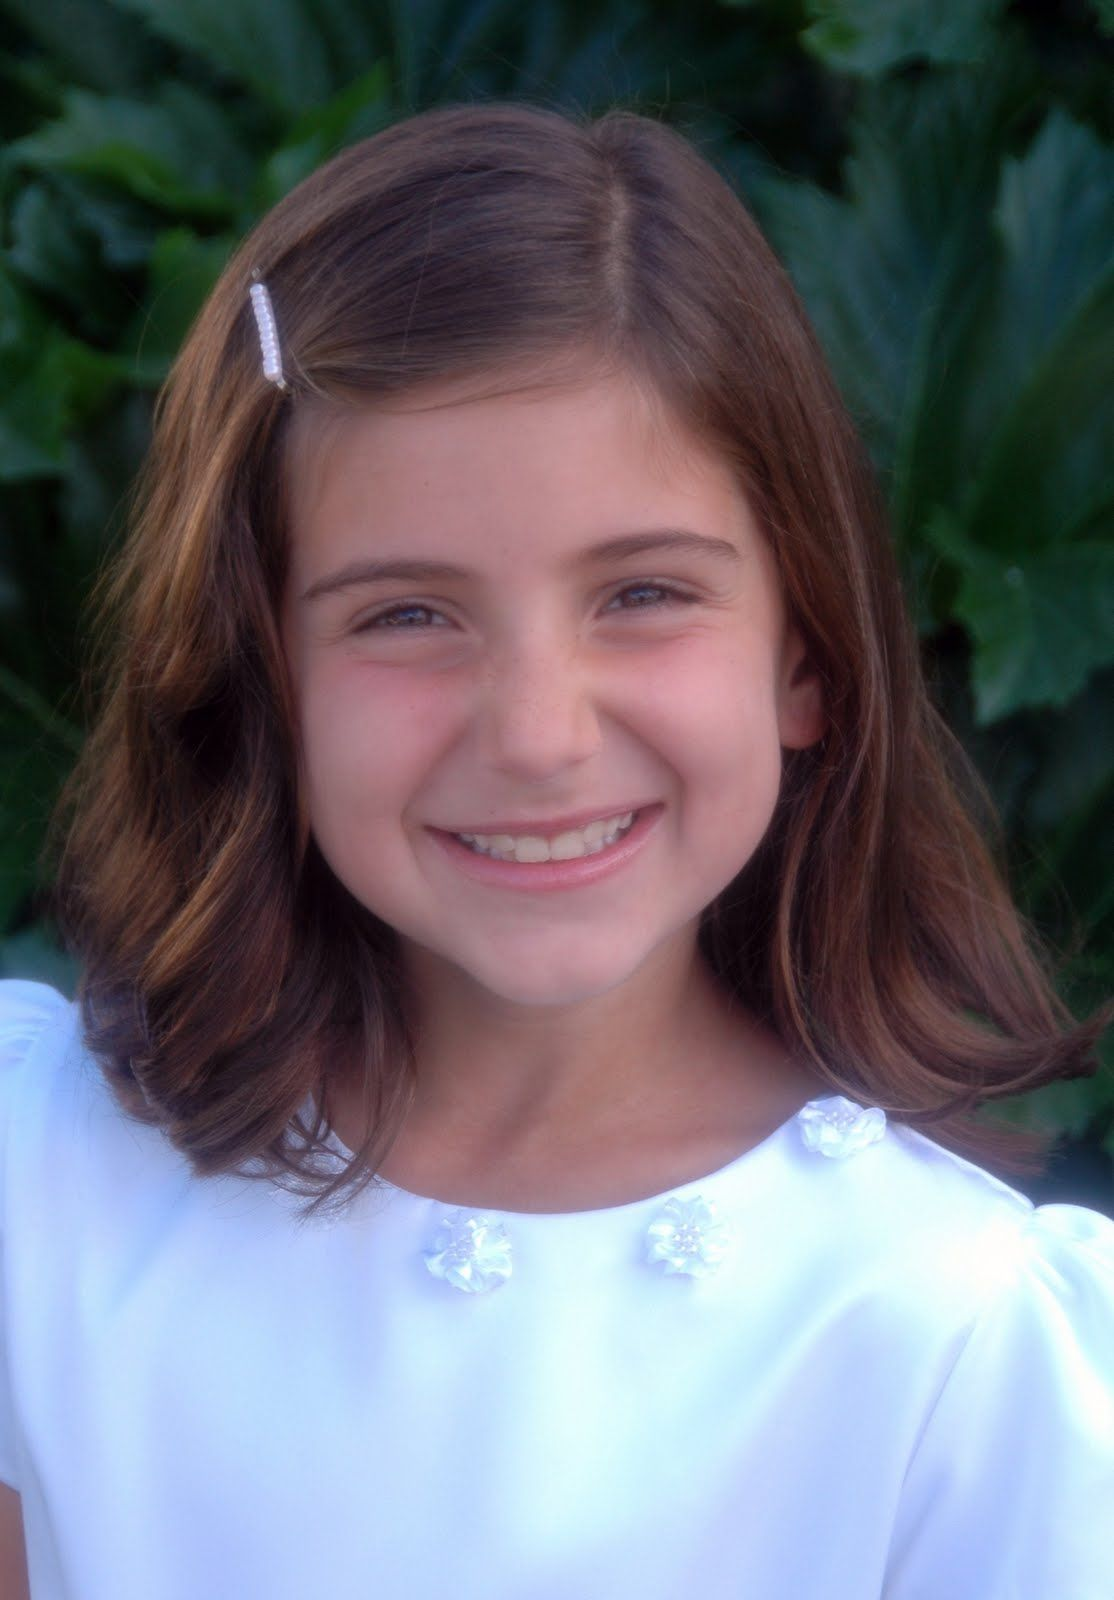 Hairstyles For Short Hair For 8 Year Olds Girl Haircuts Old Hairstyles Little Girl Haircuts